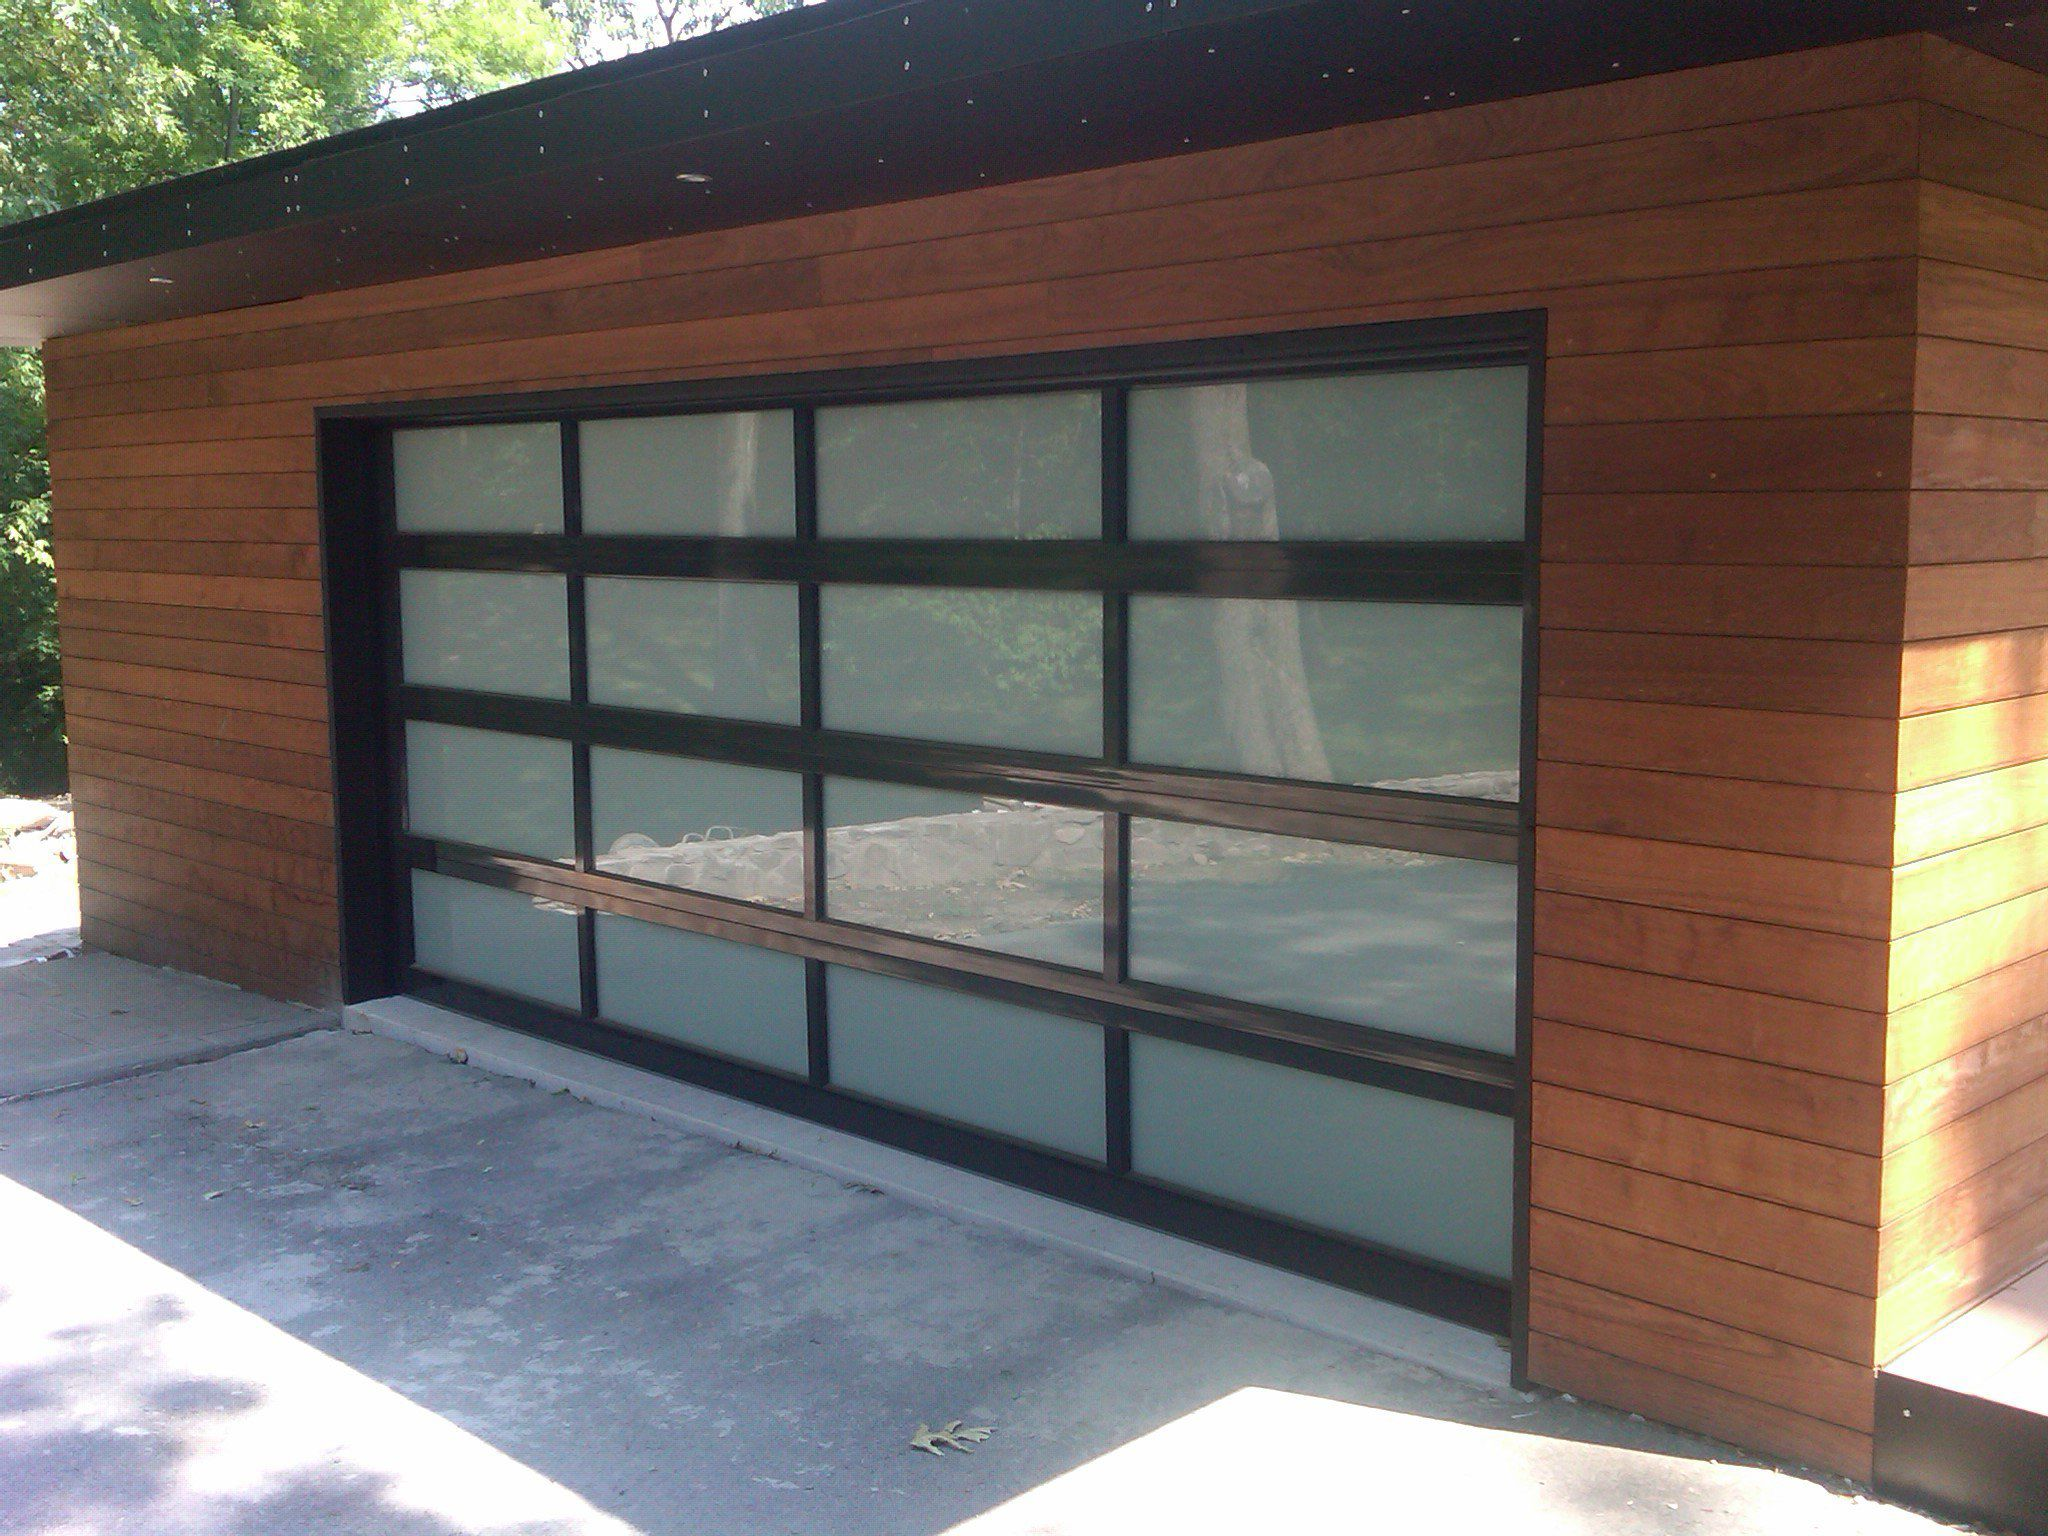 3295 C H I Aluminum Full View Door Powdercoated Black With Frosted Glass Small House Renovation Garage Doors Doors